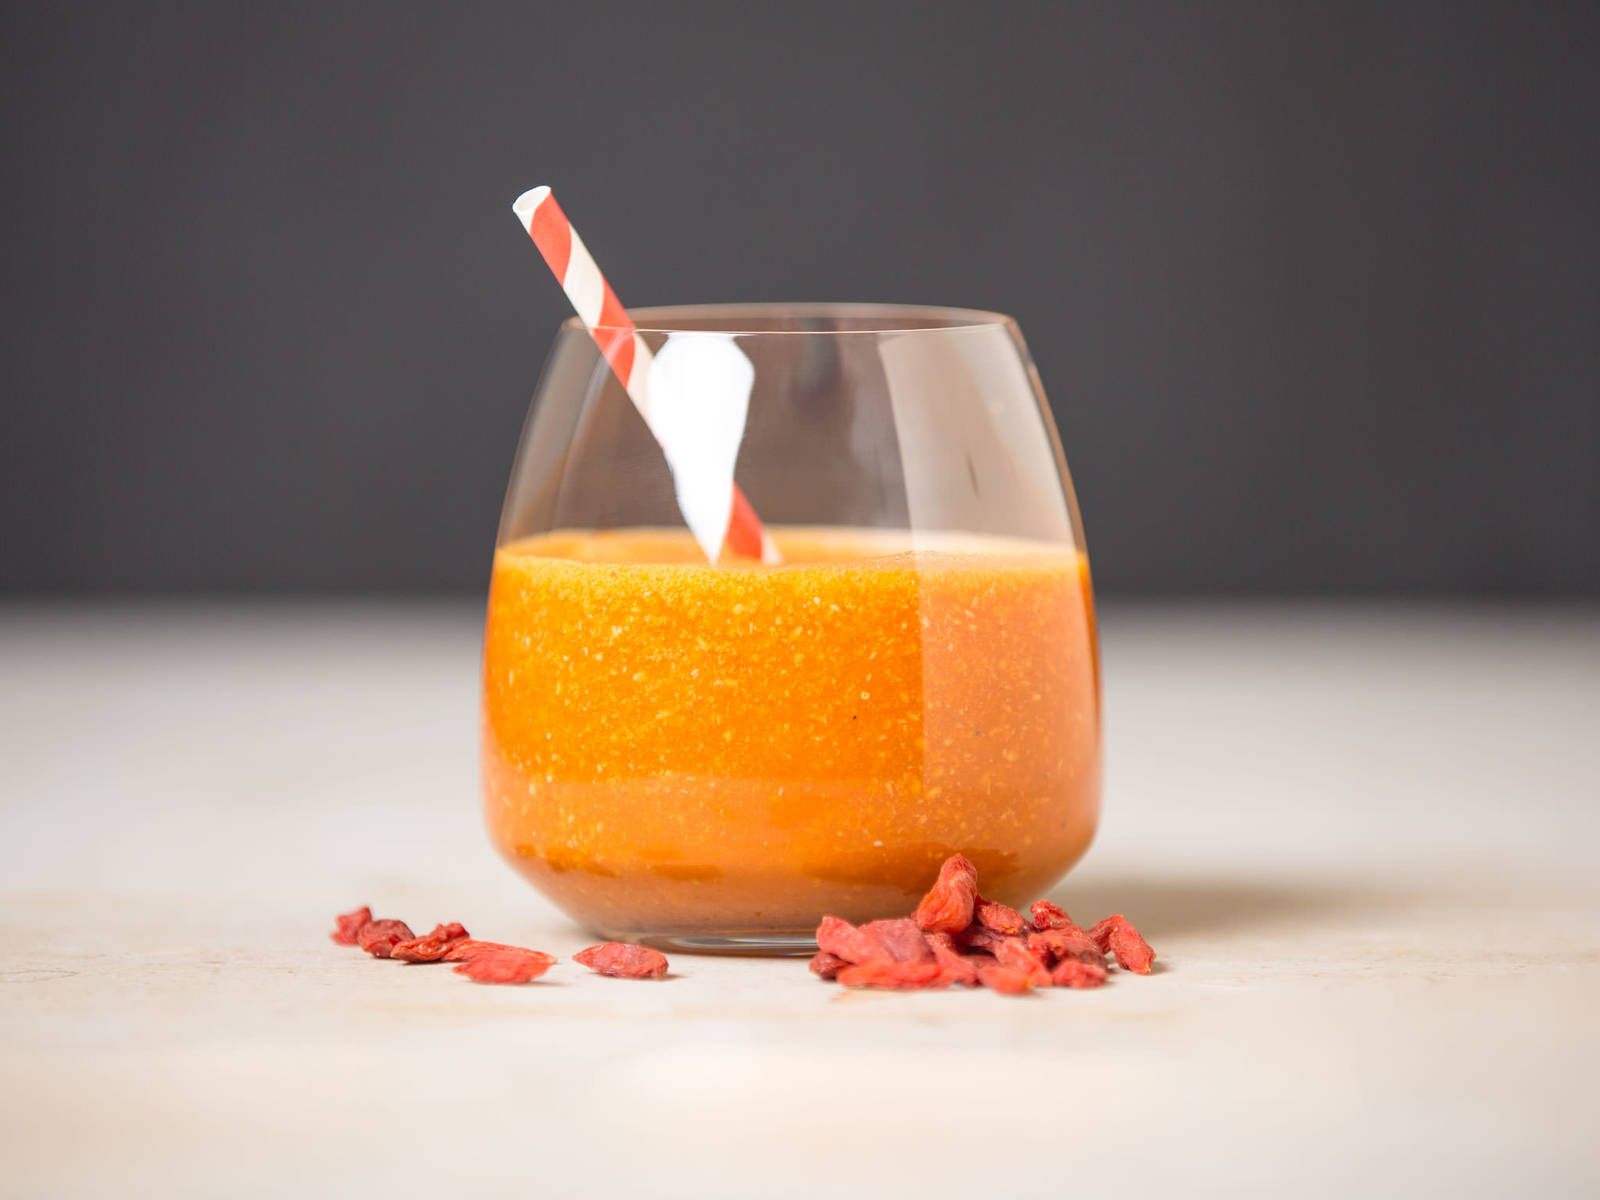 Post-workout smoothie